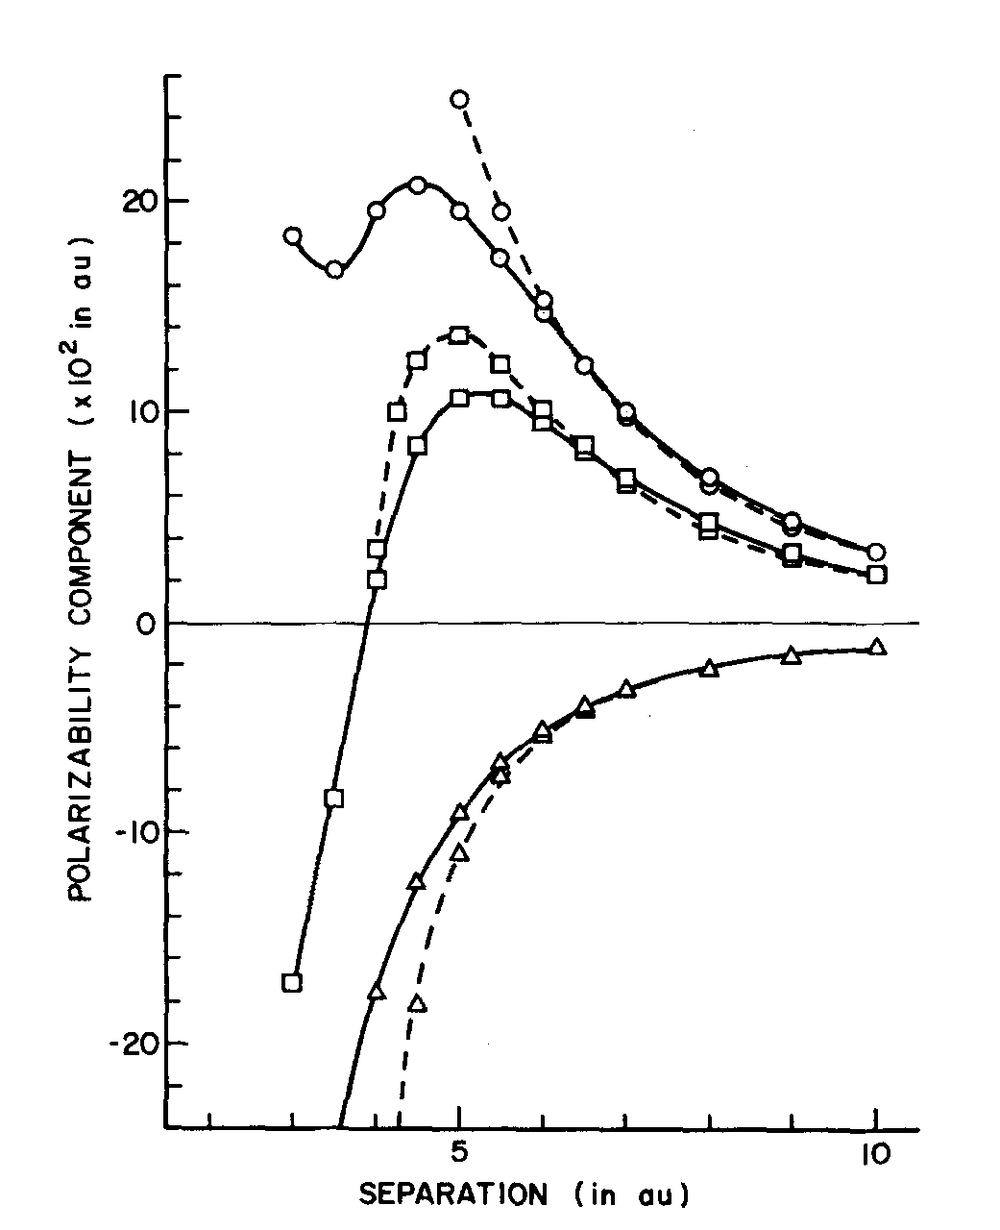 Determination Of The Pair Polarizability Tensor For The Ne Diatom   James W. Kress and John J. Kozak, Department of Chemistry and Radiation Laboratory, University of Notre Dame, Notre Dame, Indiana 46556, J. Chem. Phys. — May 15, 1977 — Volume 66, Issue 10, pp. 4516-4519,